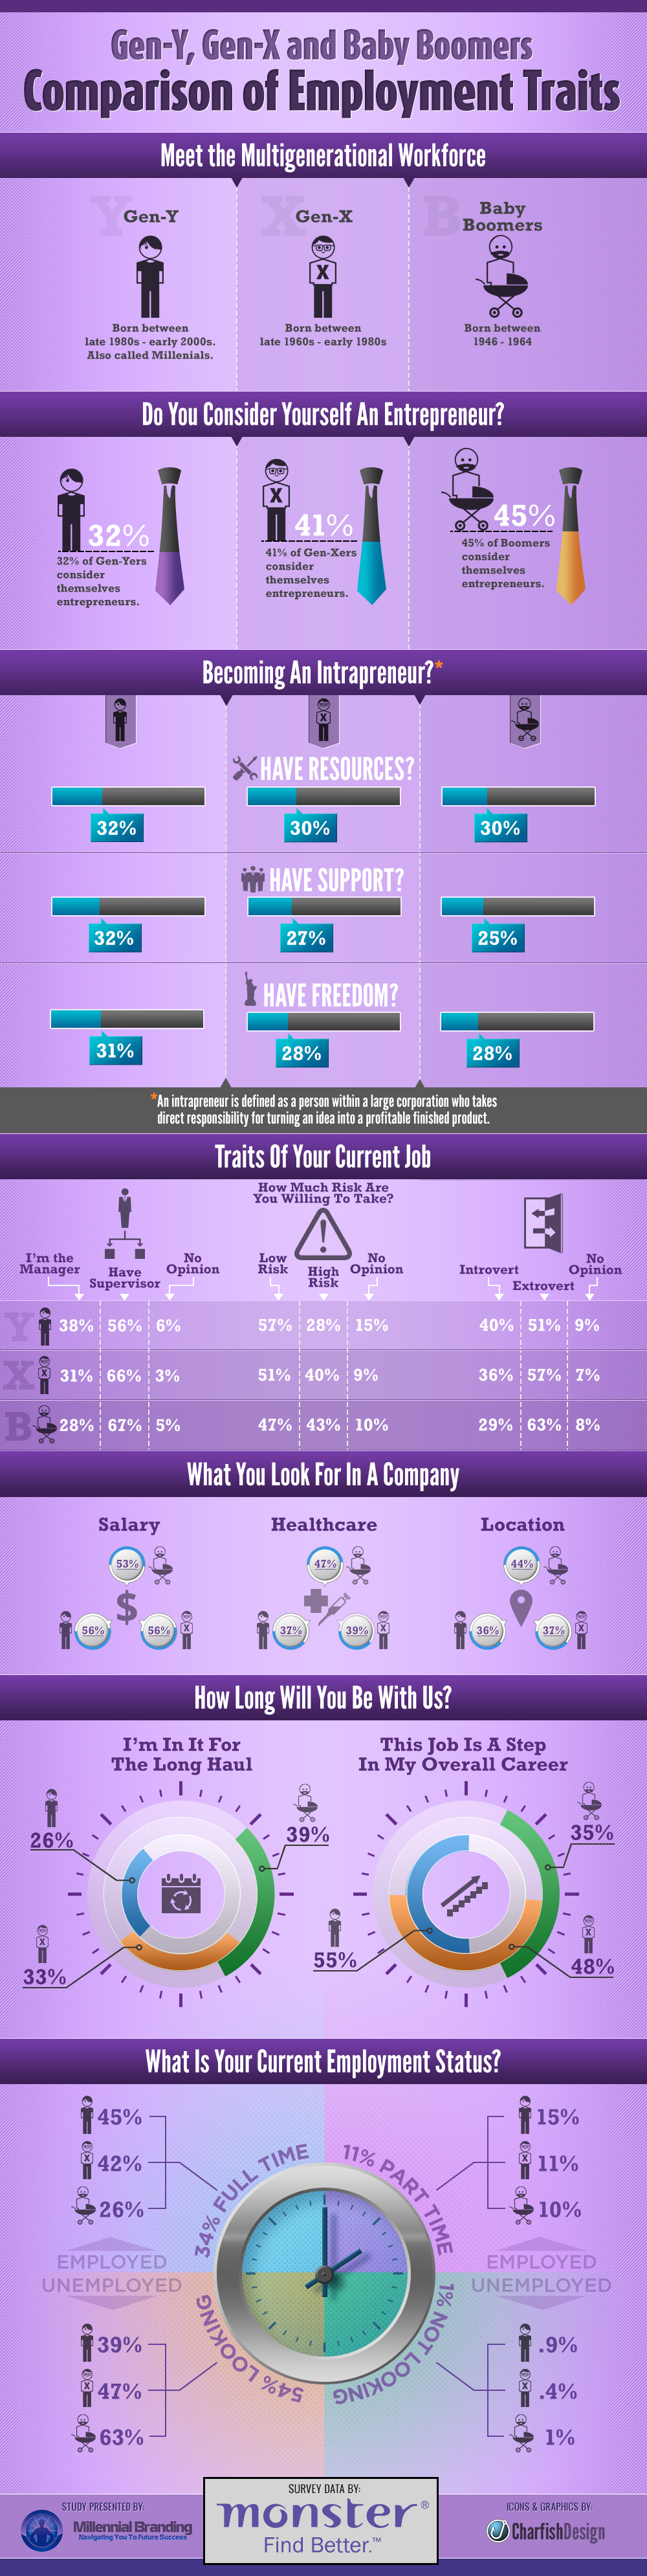 Are Baby Boomers More Entrepreneurial Than Gen Y Zdnet Management Infographic Baby Boomers Infographic Infographic